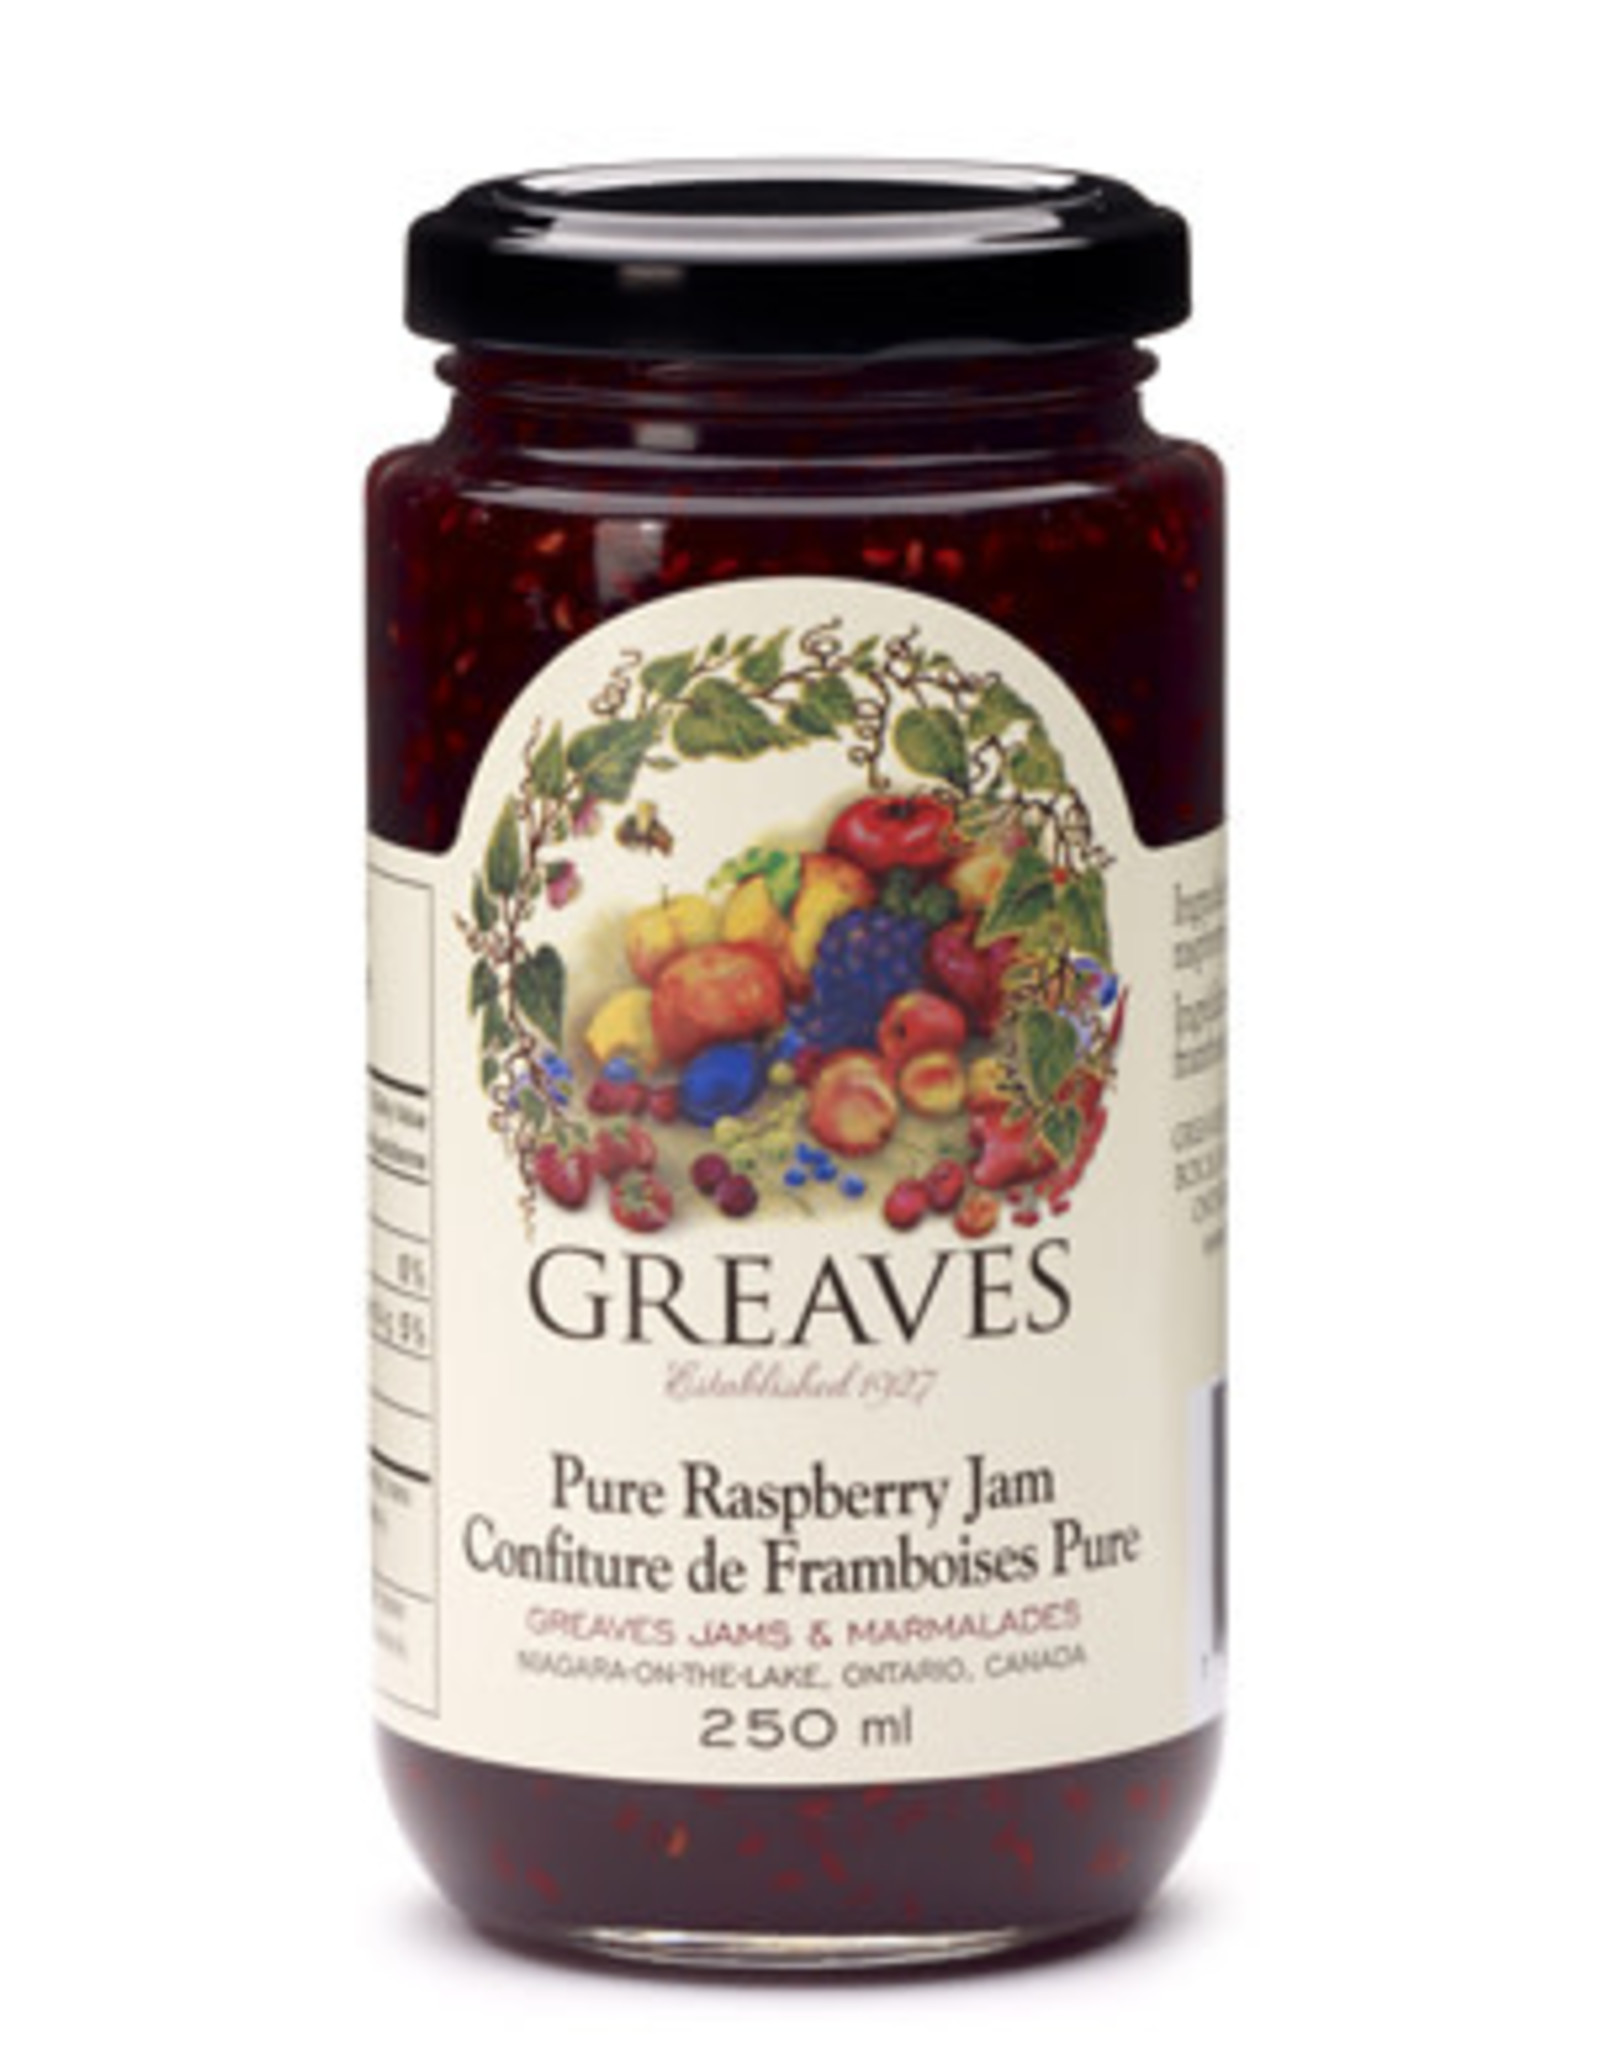 Greaves Jams & Marmalades Ltd. Greaves, Raspberry Jam, 250ml